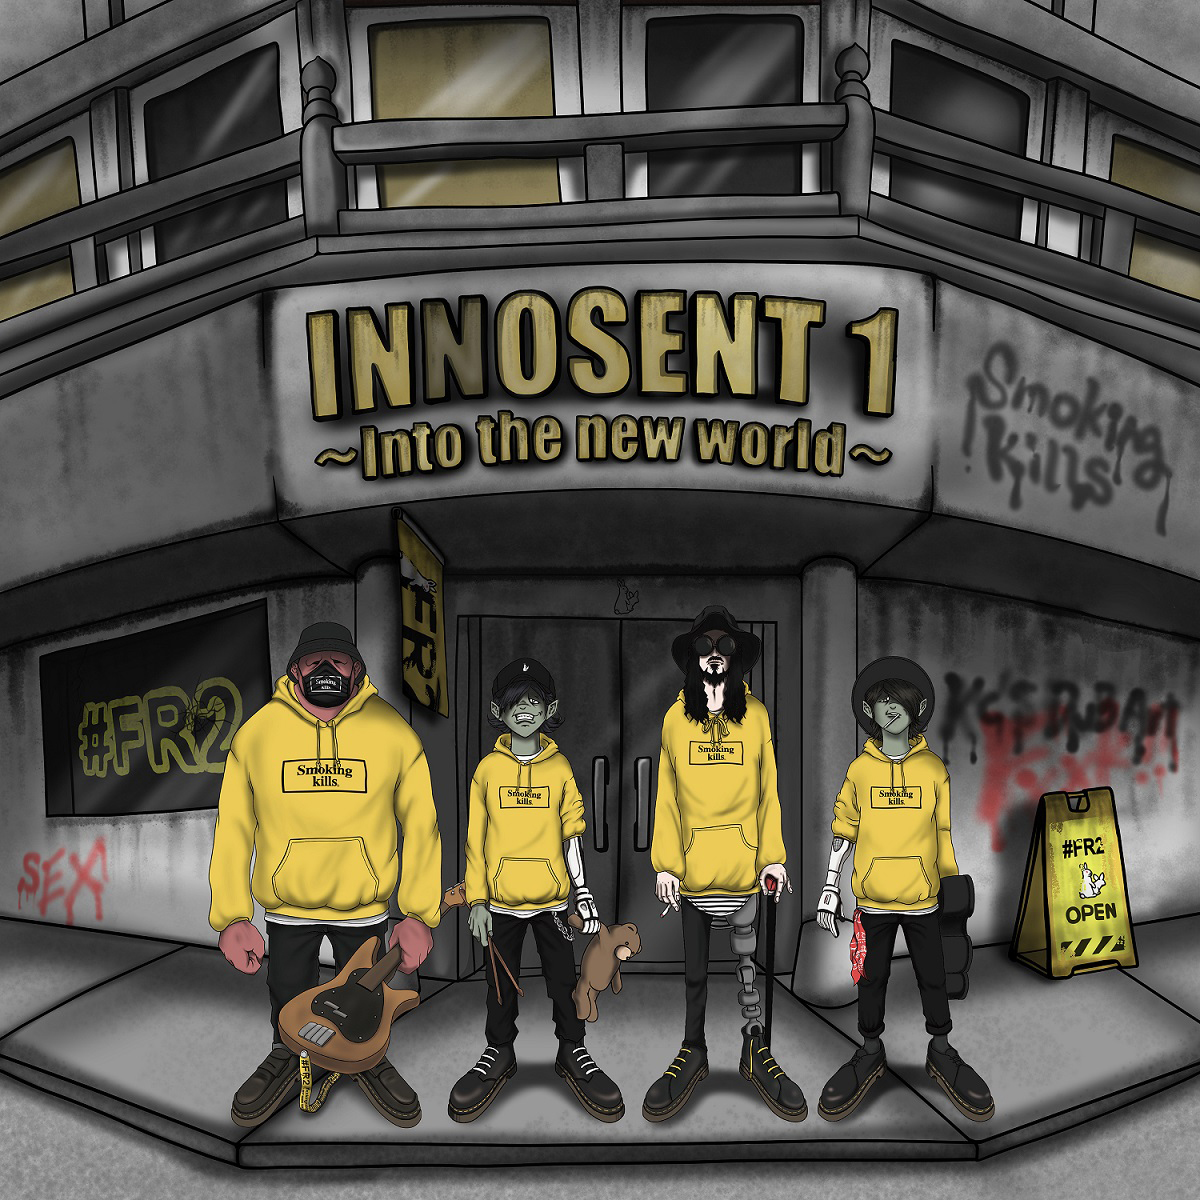 『INNOSENT 1 ~Into the new world~』